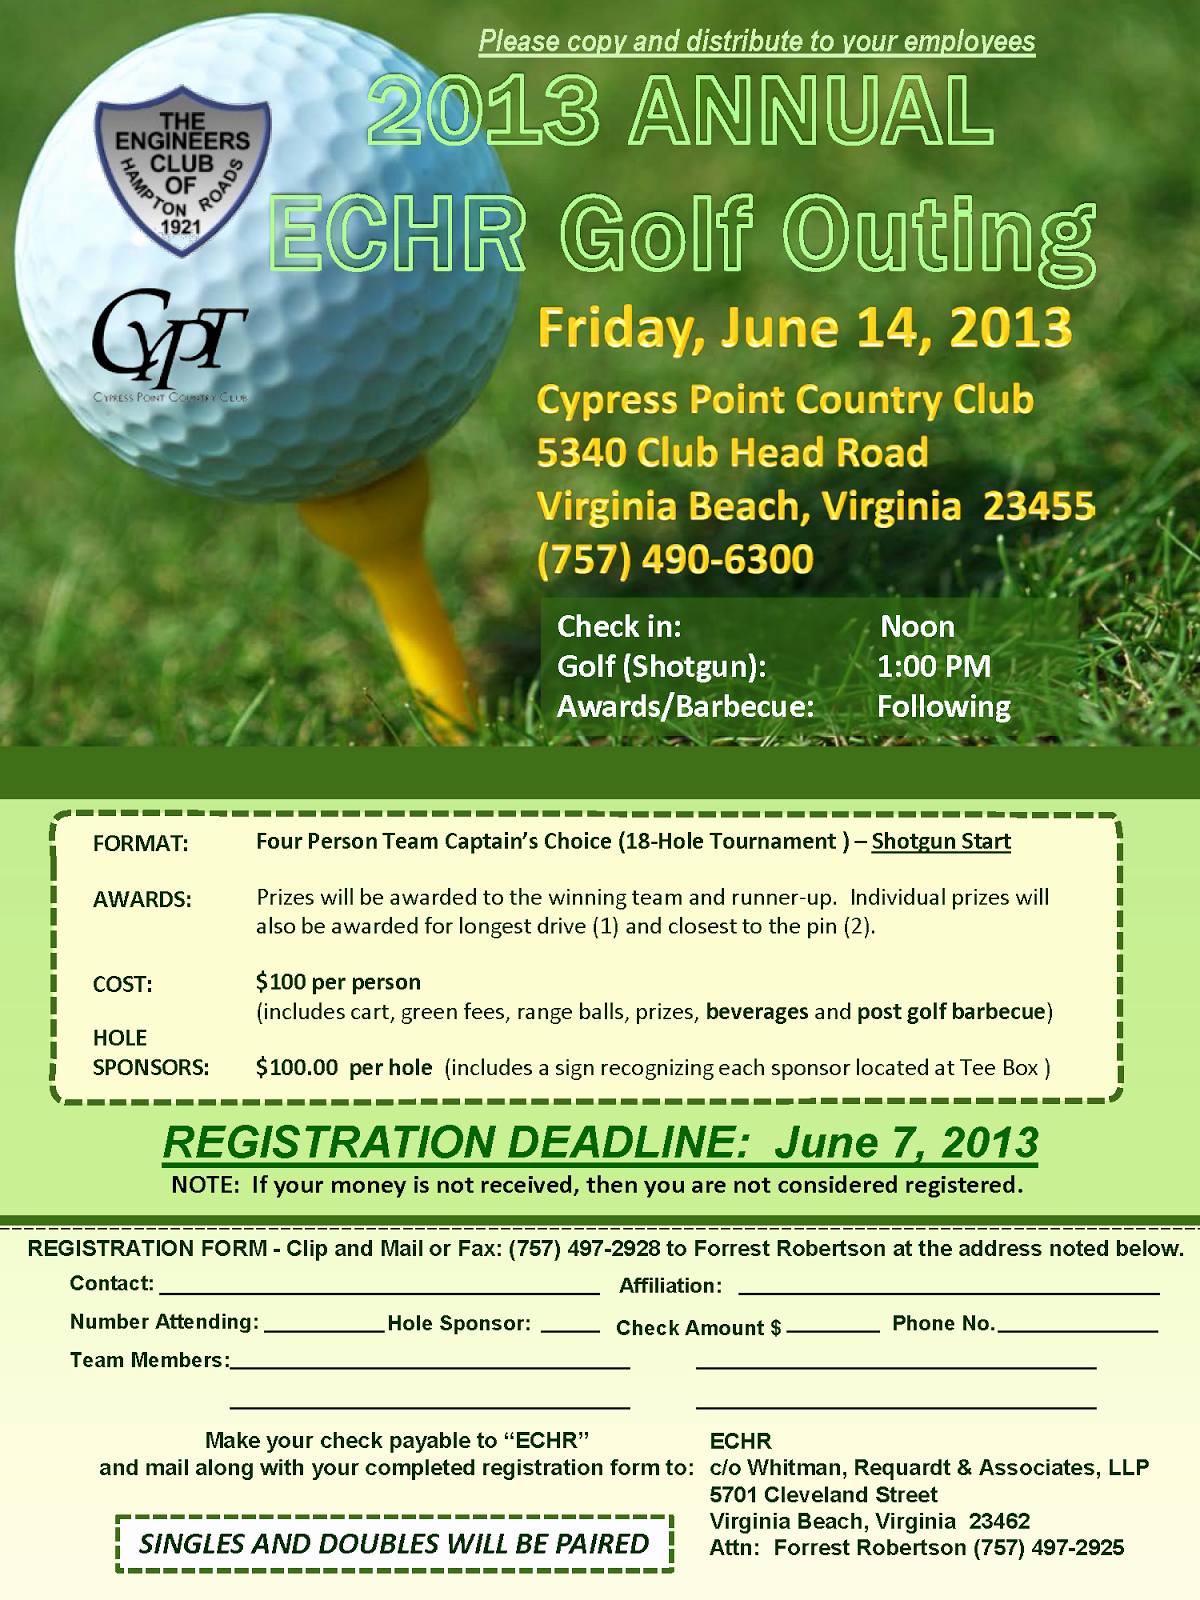 Golf Outing Flyer Template Inspirational Tidewater Chapter Vspe 2013 Annual Echr Golf Outing